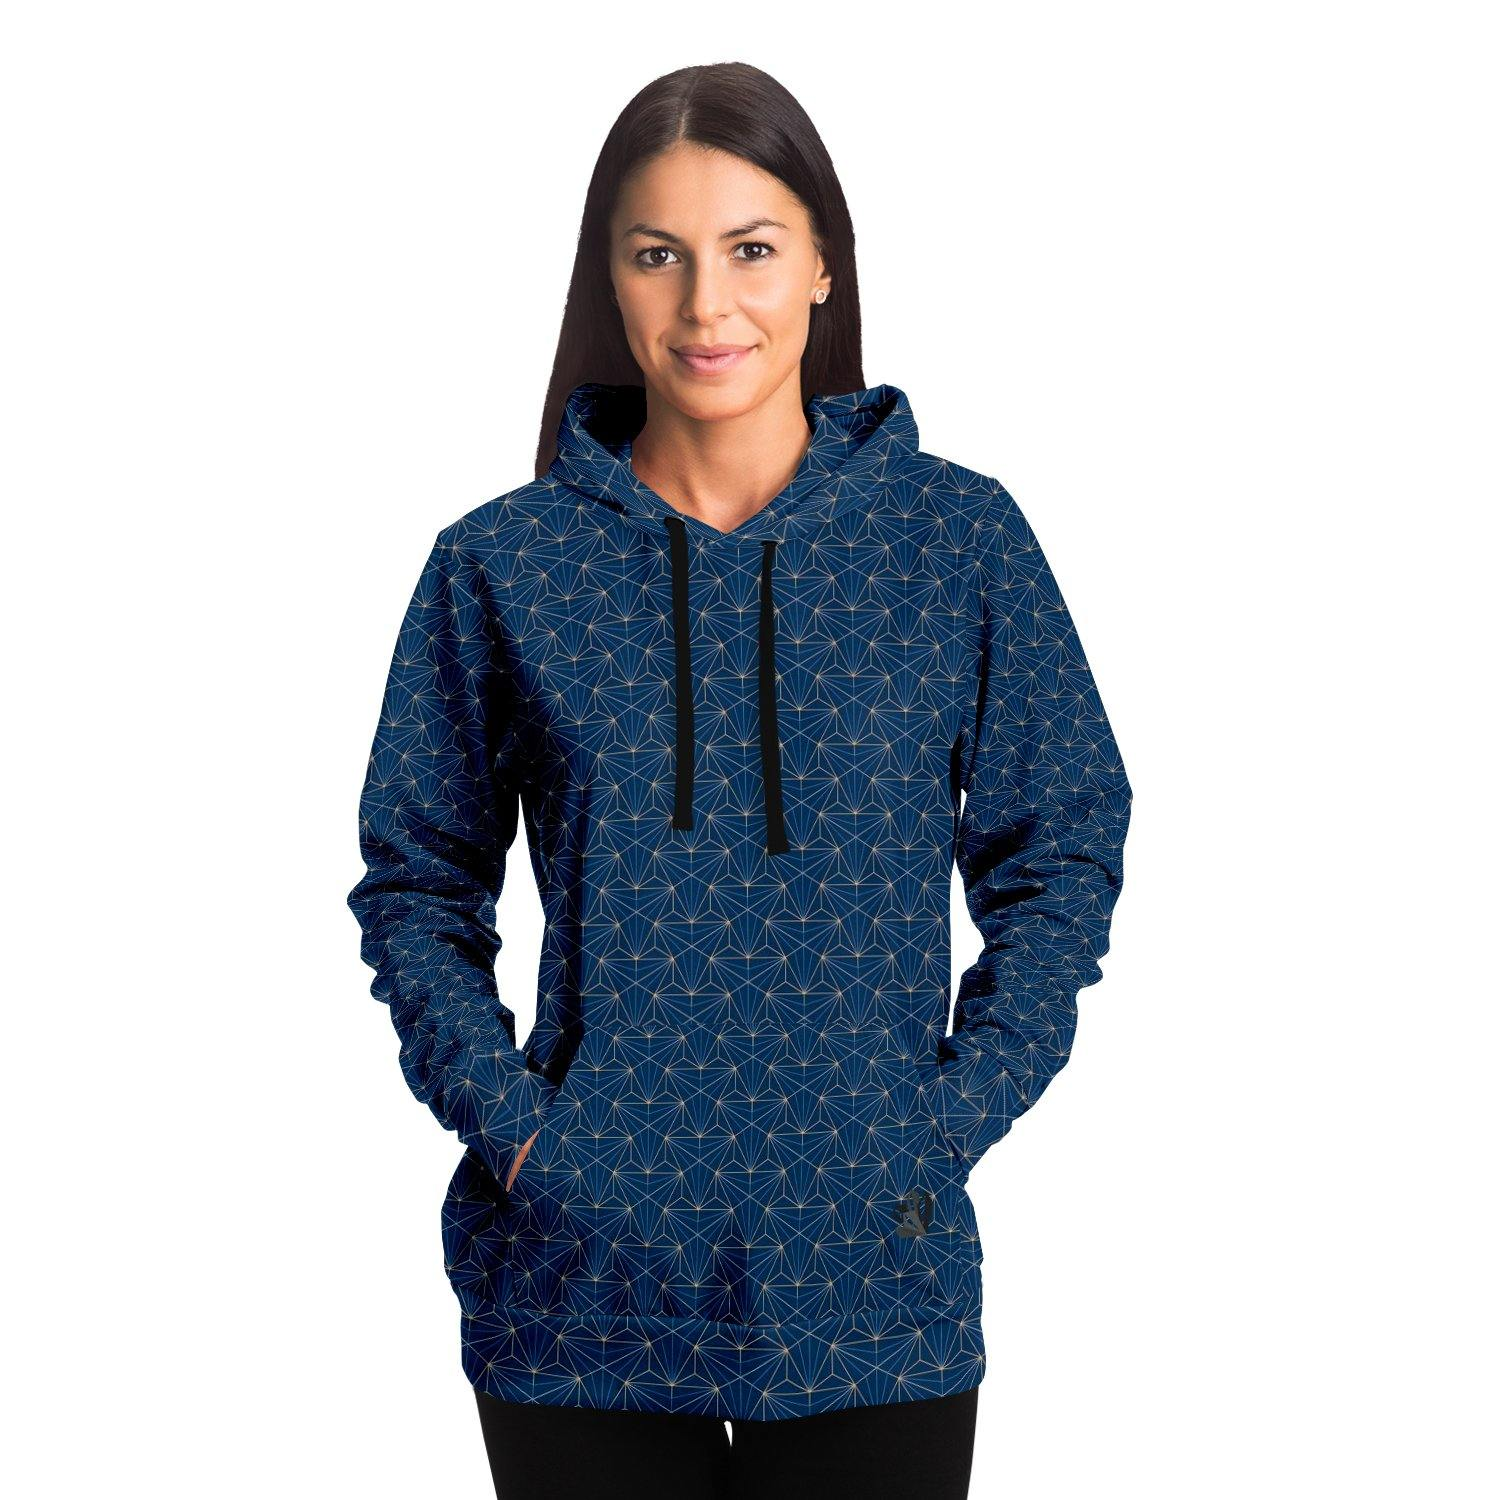 Topaz Sacred Connections Premium Pullover Hoodie